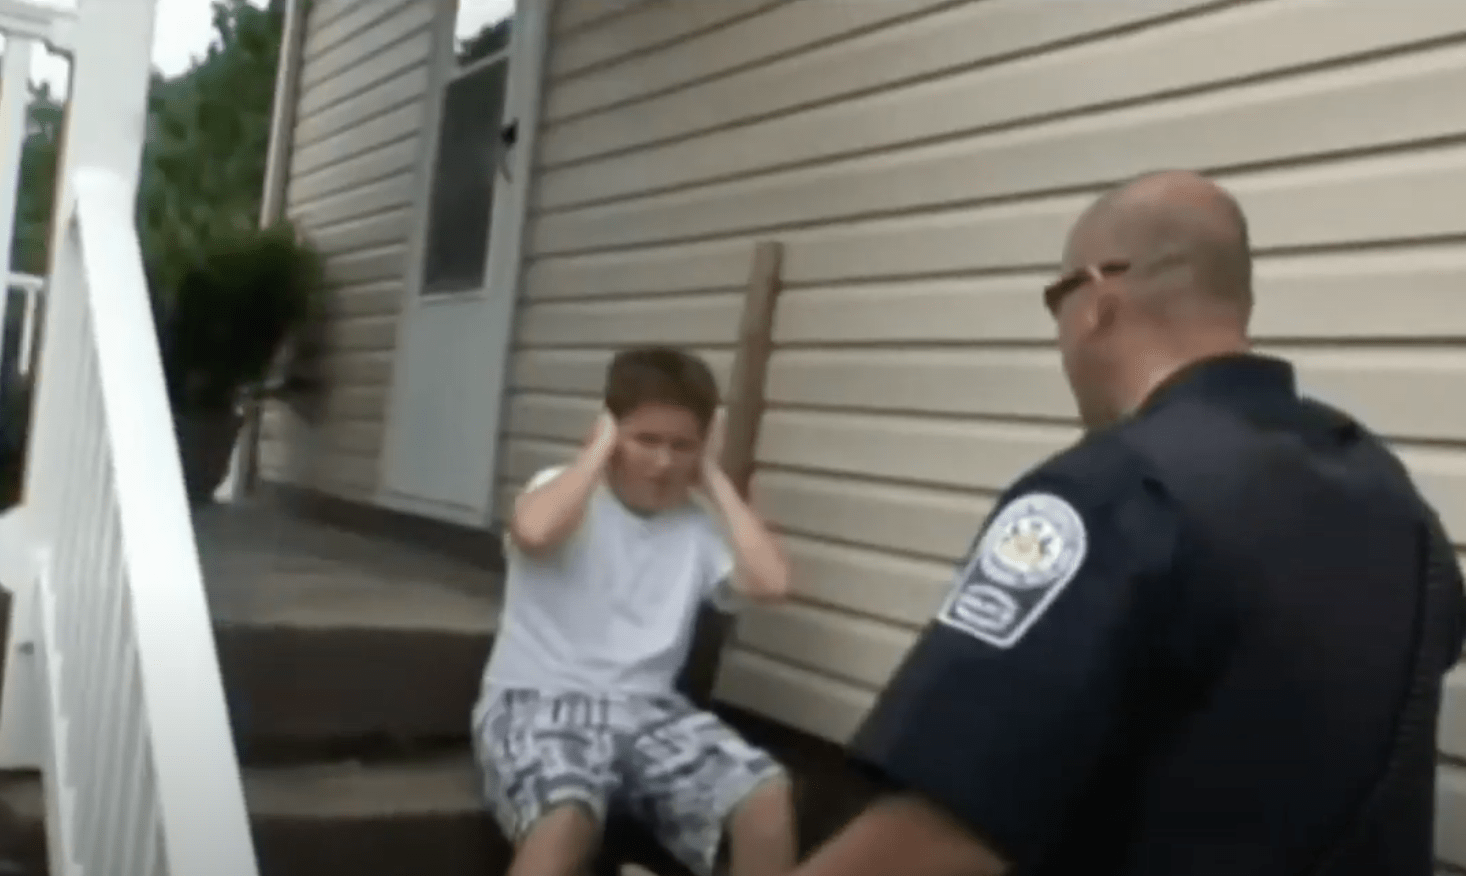 Autism Awareness: There's no such thing as a routine police encounter. Here's how we can protect both kids and cops.